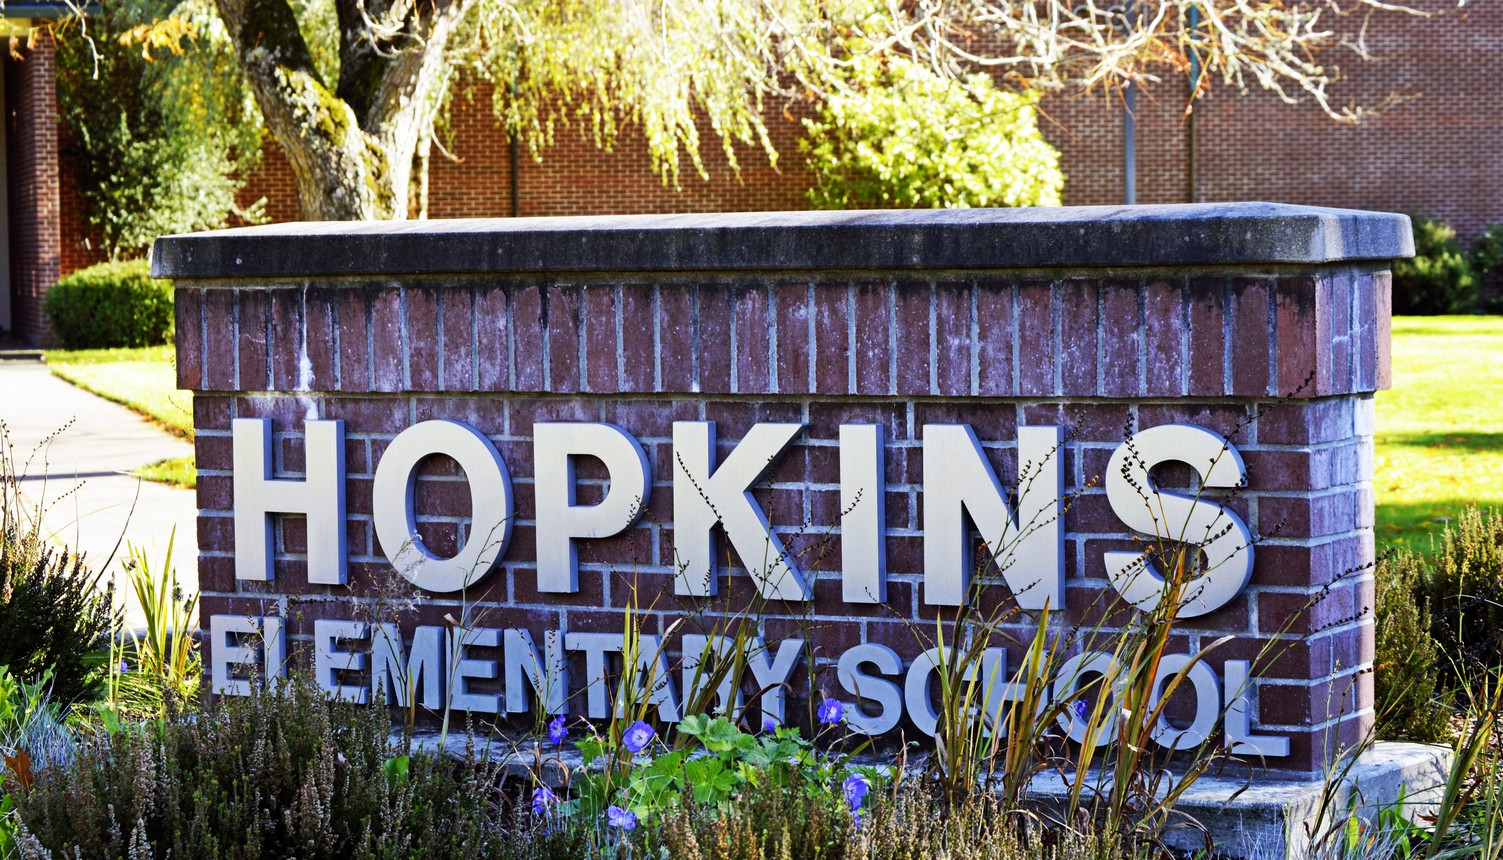 26-sherwood-oregon-hopkins-elementary-school-the-kelly-group-real-estate